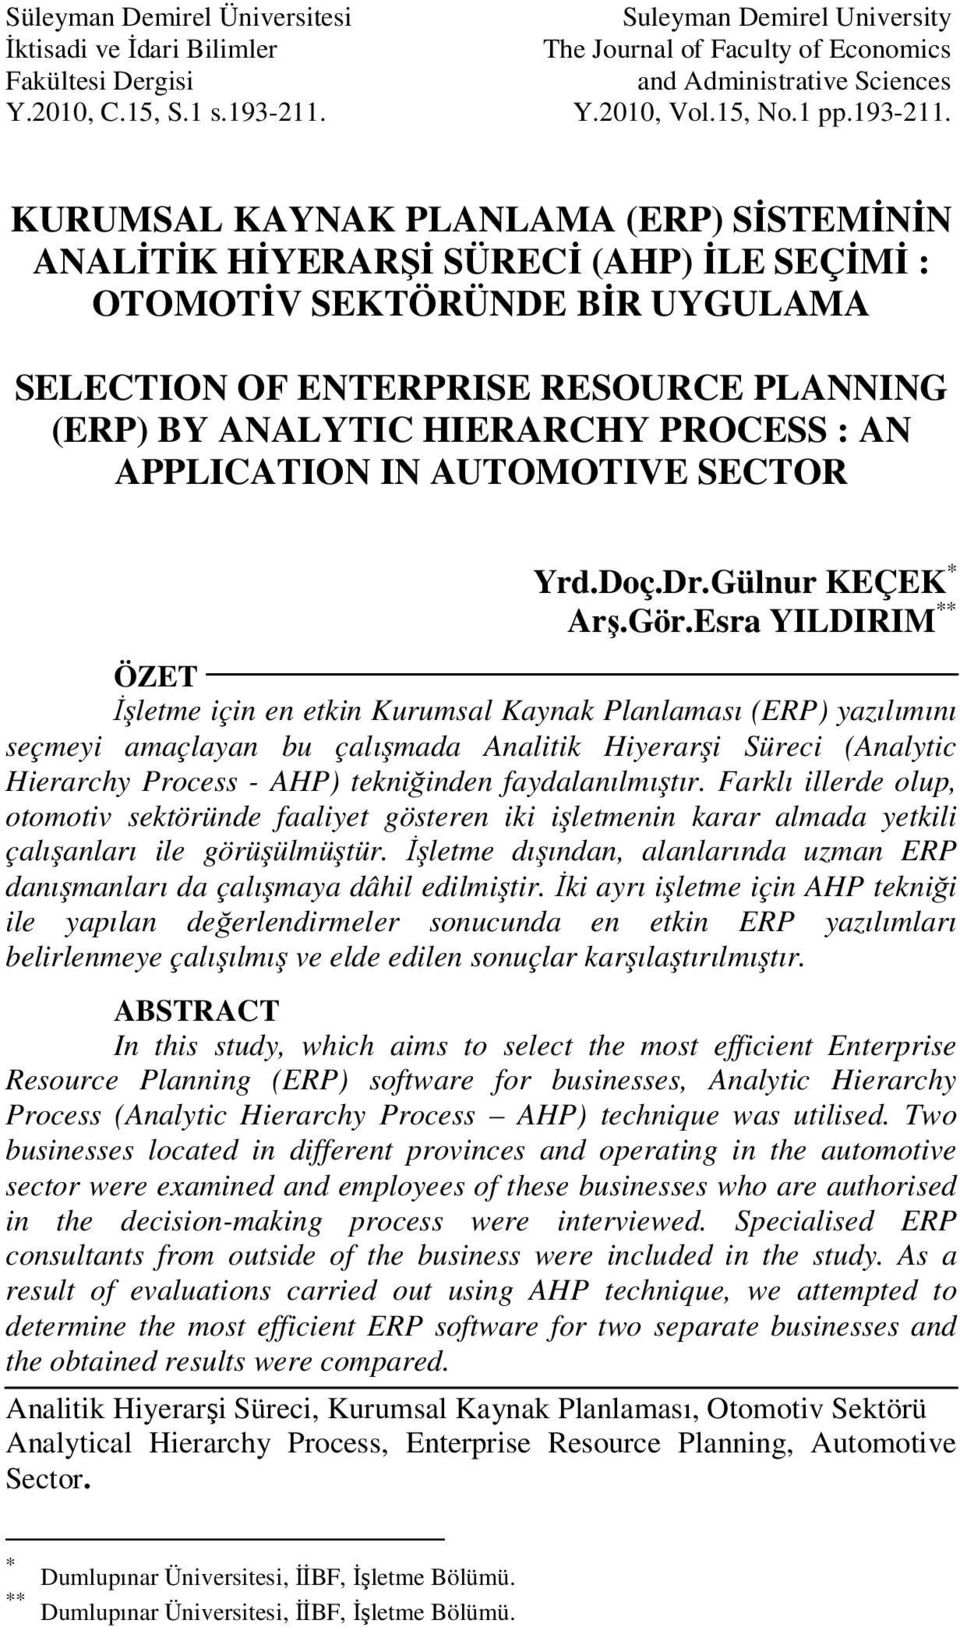 KURUMSAL KAYNAK PLANLAMA (ERP) SİSTEMİNİN ANALİTİK HİYERARŞİ SÜRECİ (AHP) İLE SEÇİMİ : OTOMOTİV SEKTÖRÜNDE BİR UYGULAMA SELECTION OF ENTERPRISE RESOURCE PLANNING (ERP) BY ANALYTIC HIERARCHY PROCESS :